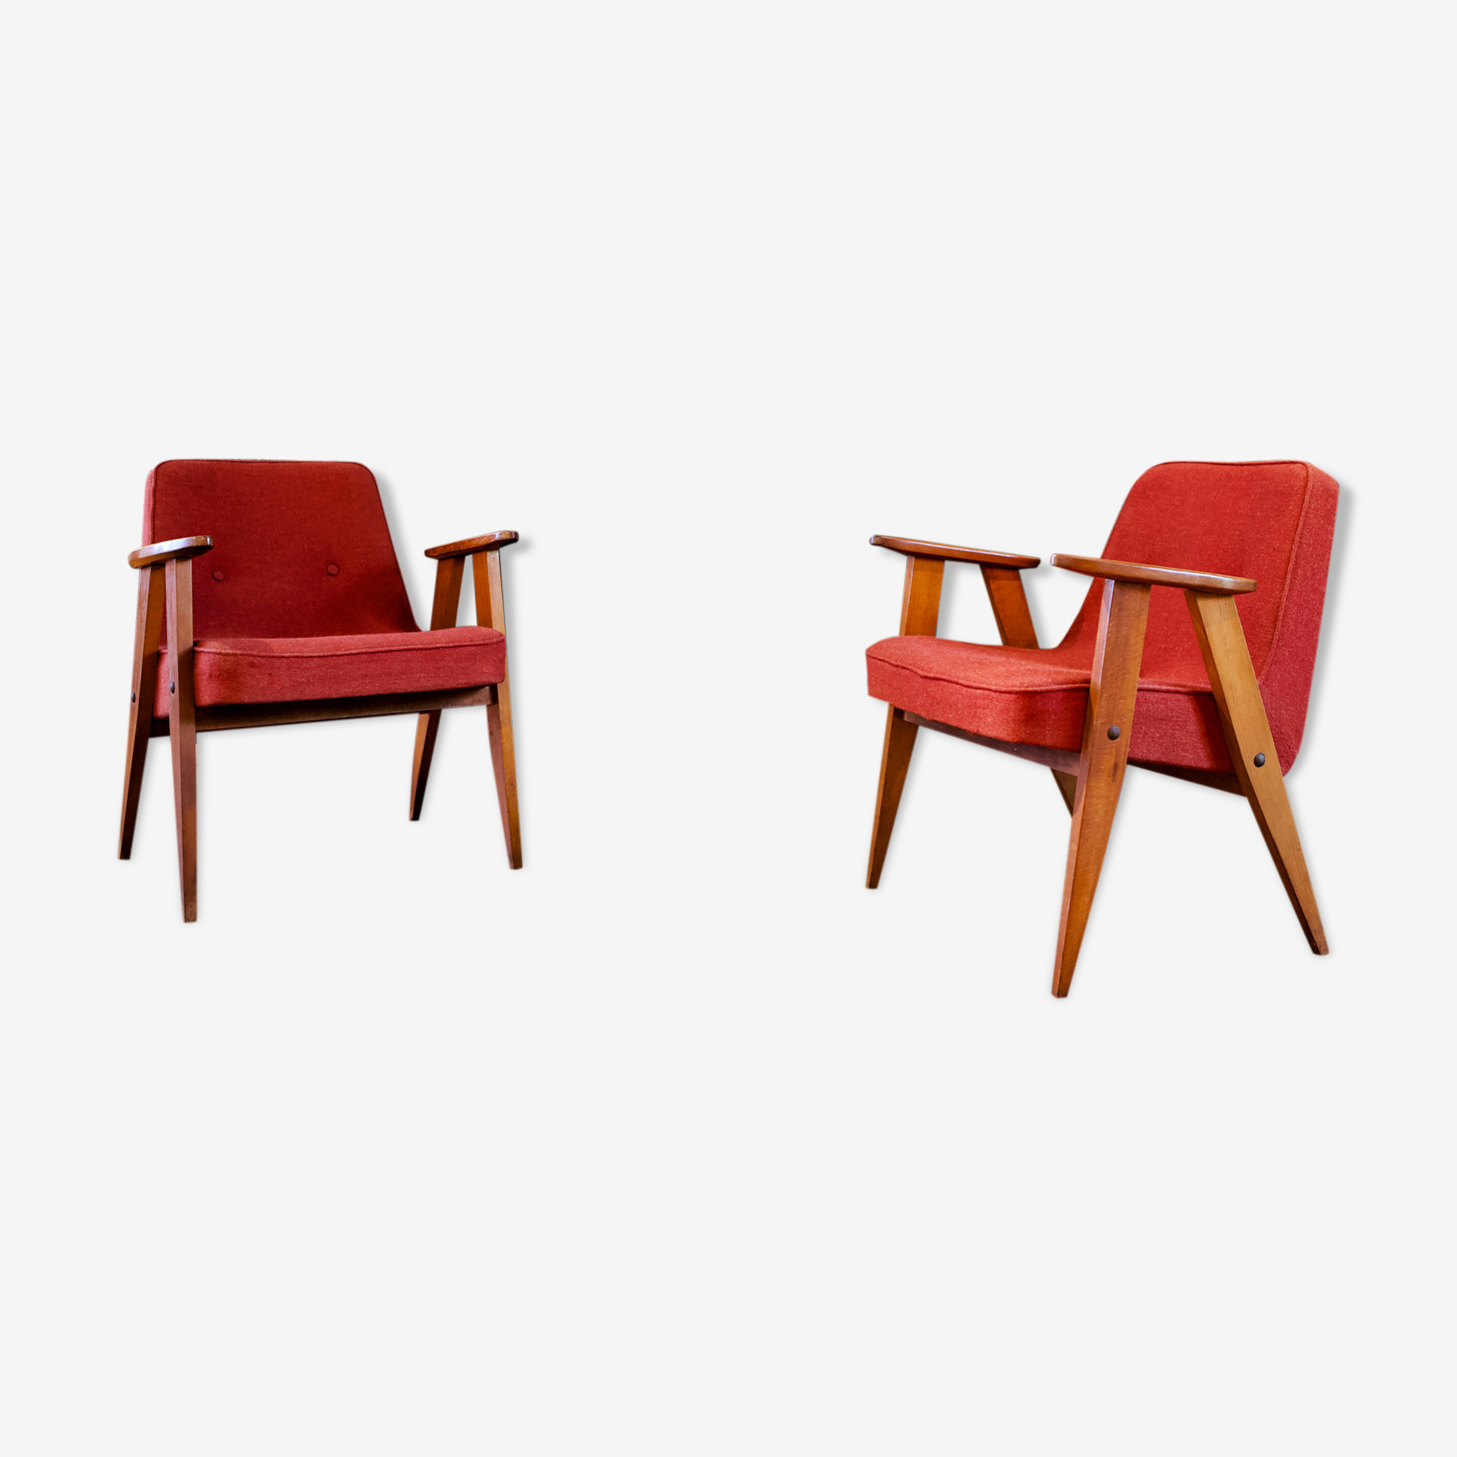 Authentic pair of 366 armchairs by Józef Chierowski, 1960